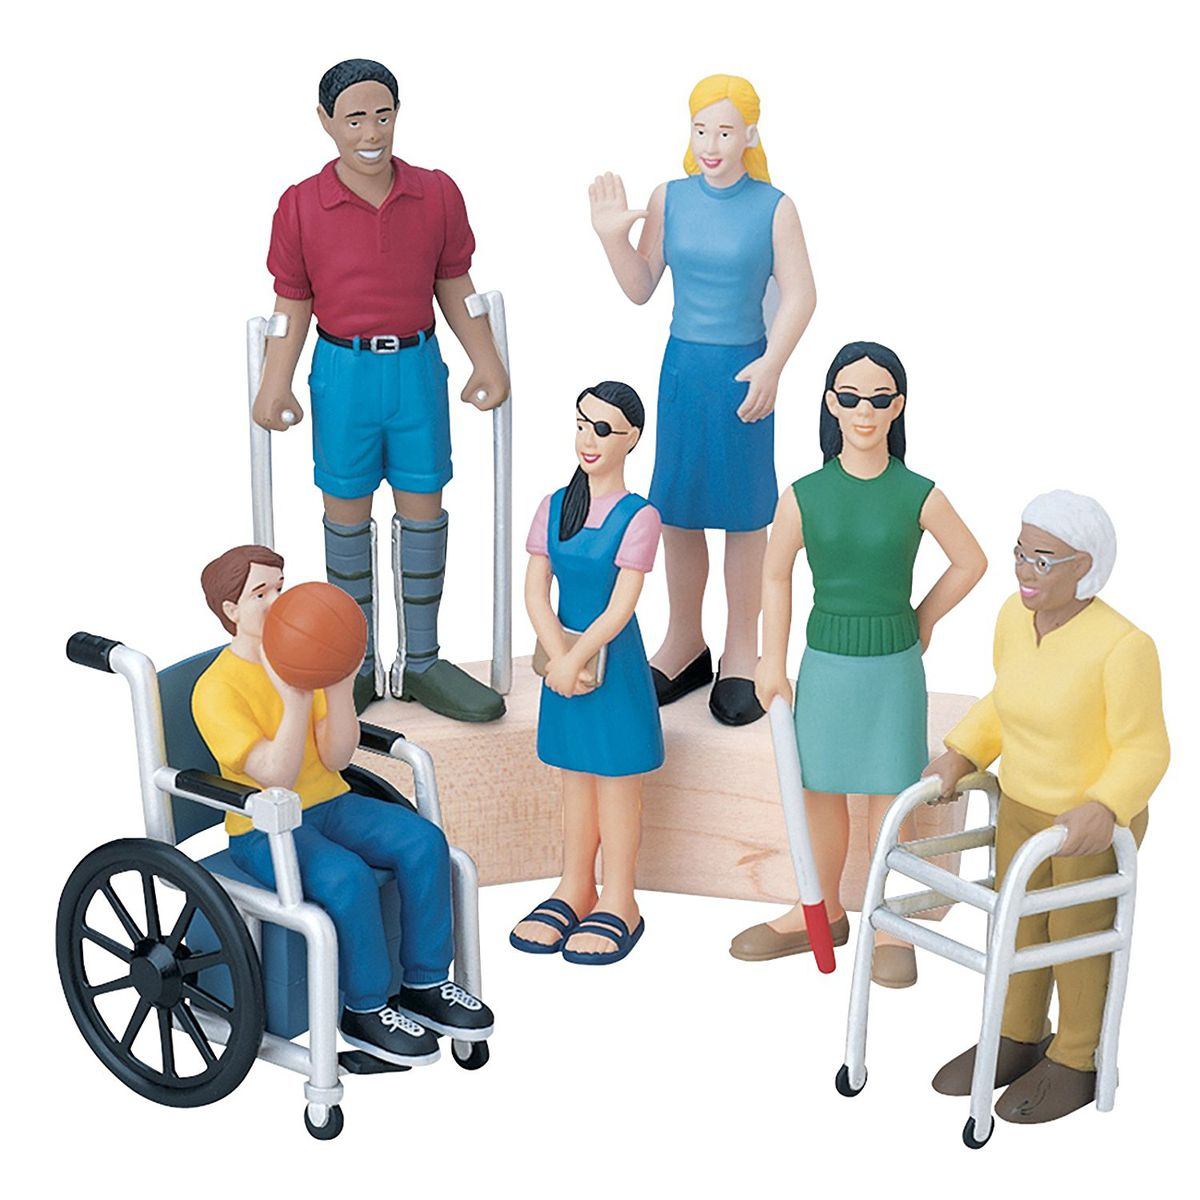 The Friends with Diverse Abilities set brings inclusivity into a dollhouse.